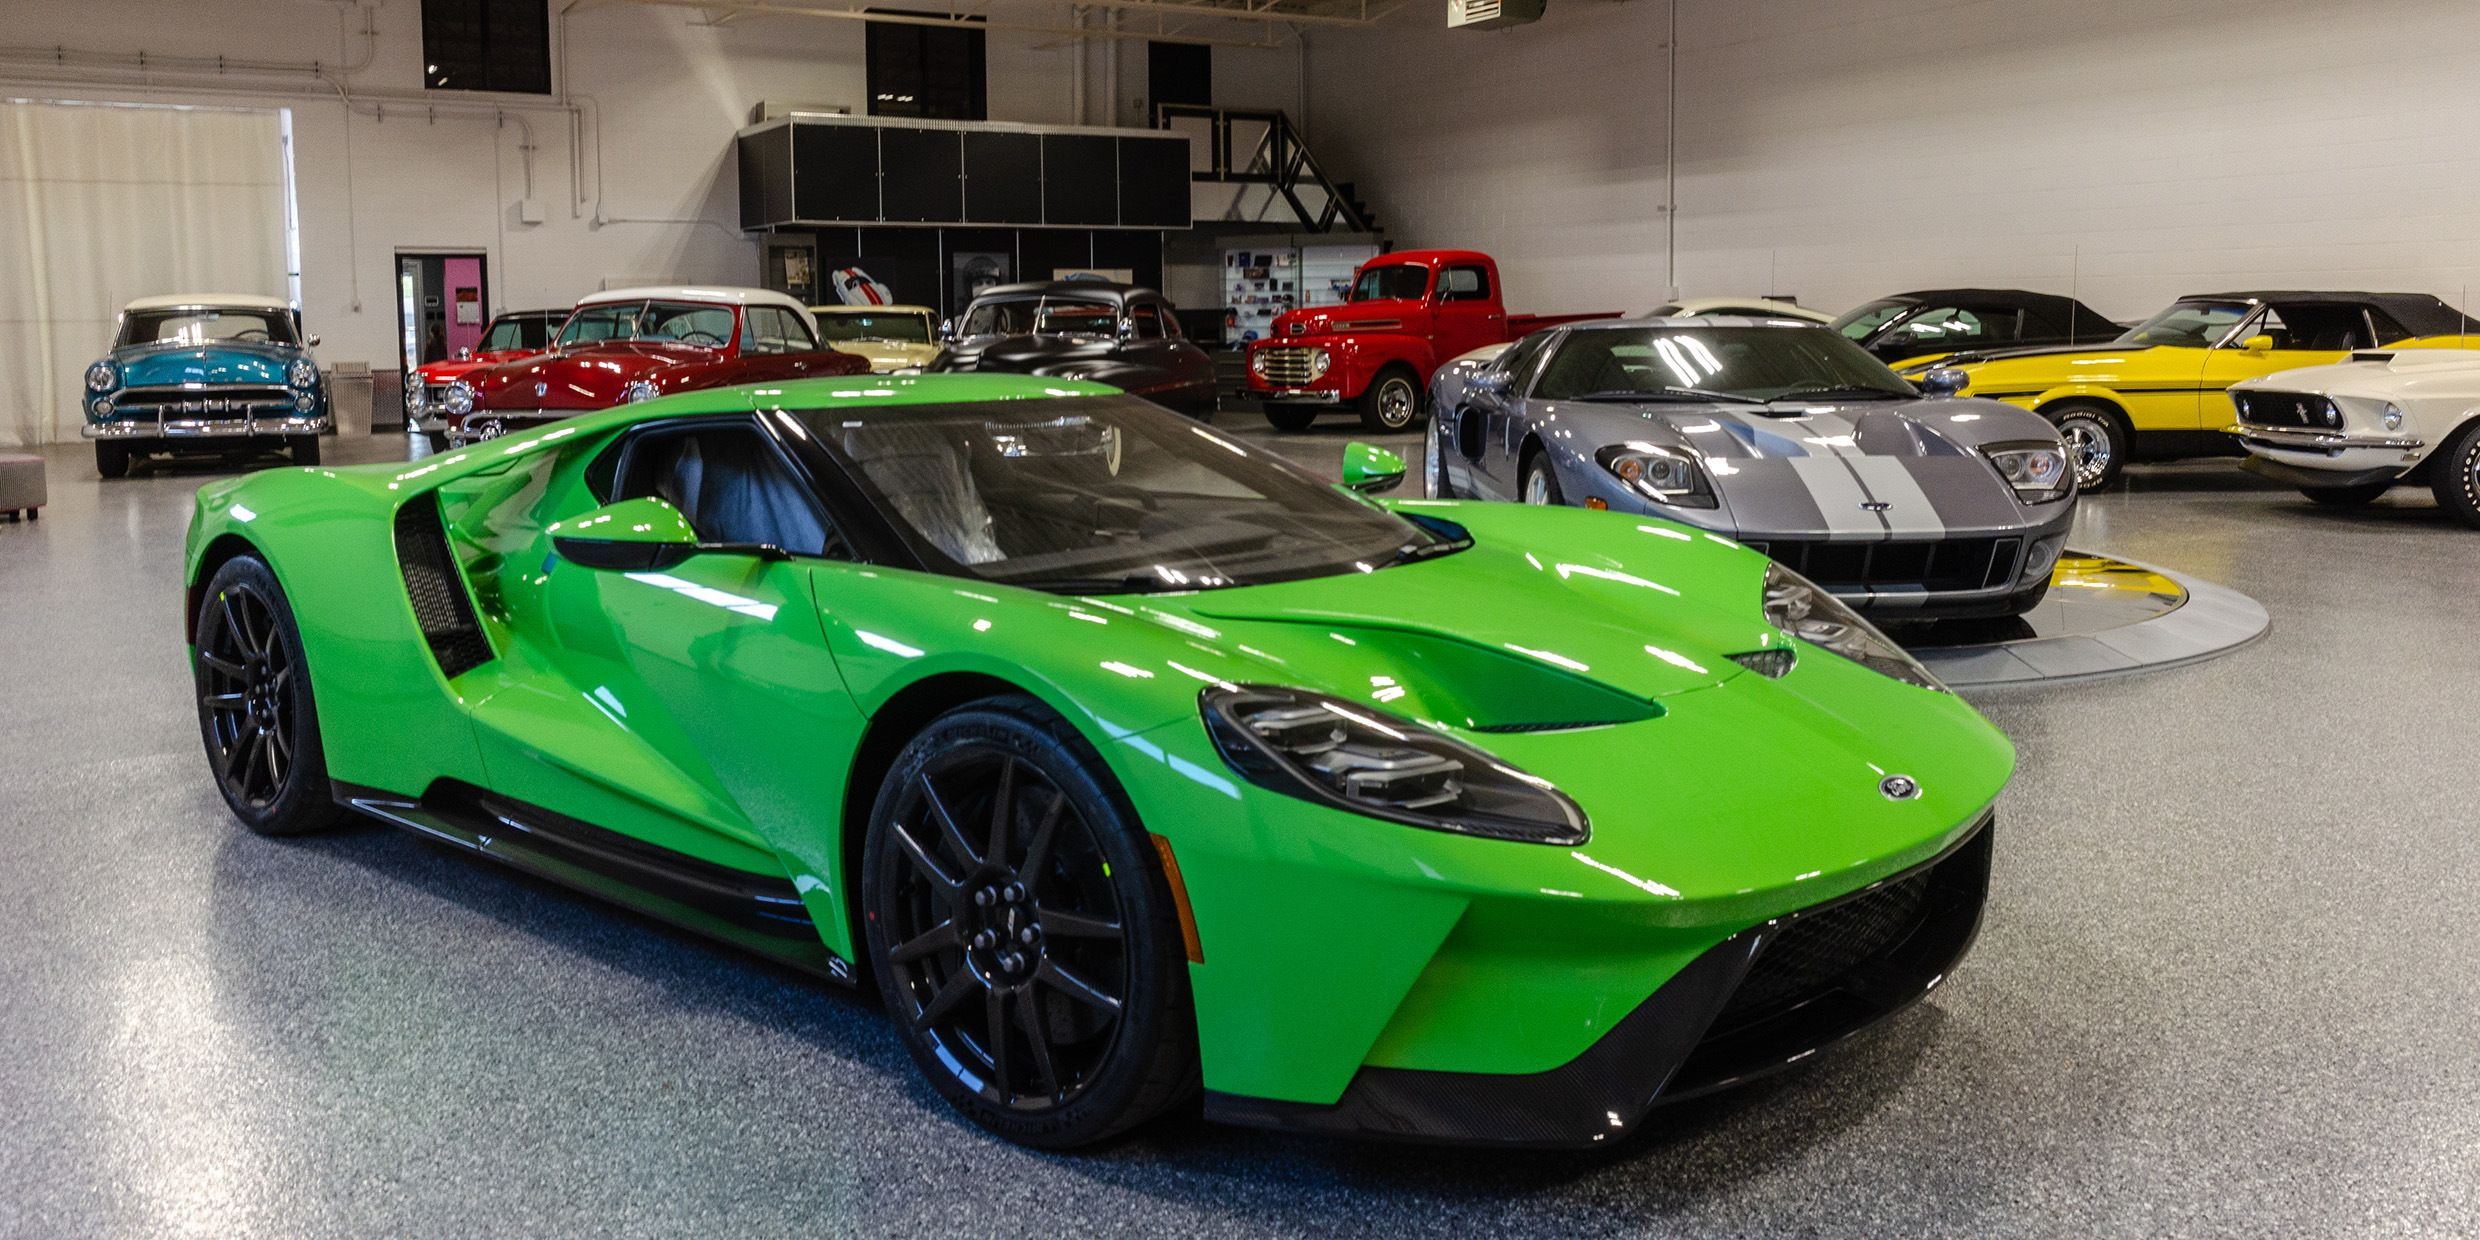 on the road 2018 ford gt cars ford gt ford cars rh pinterest co uk